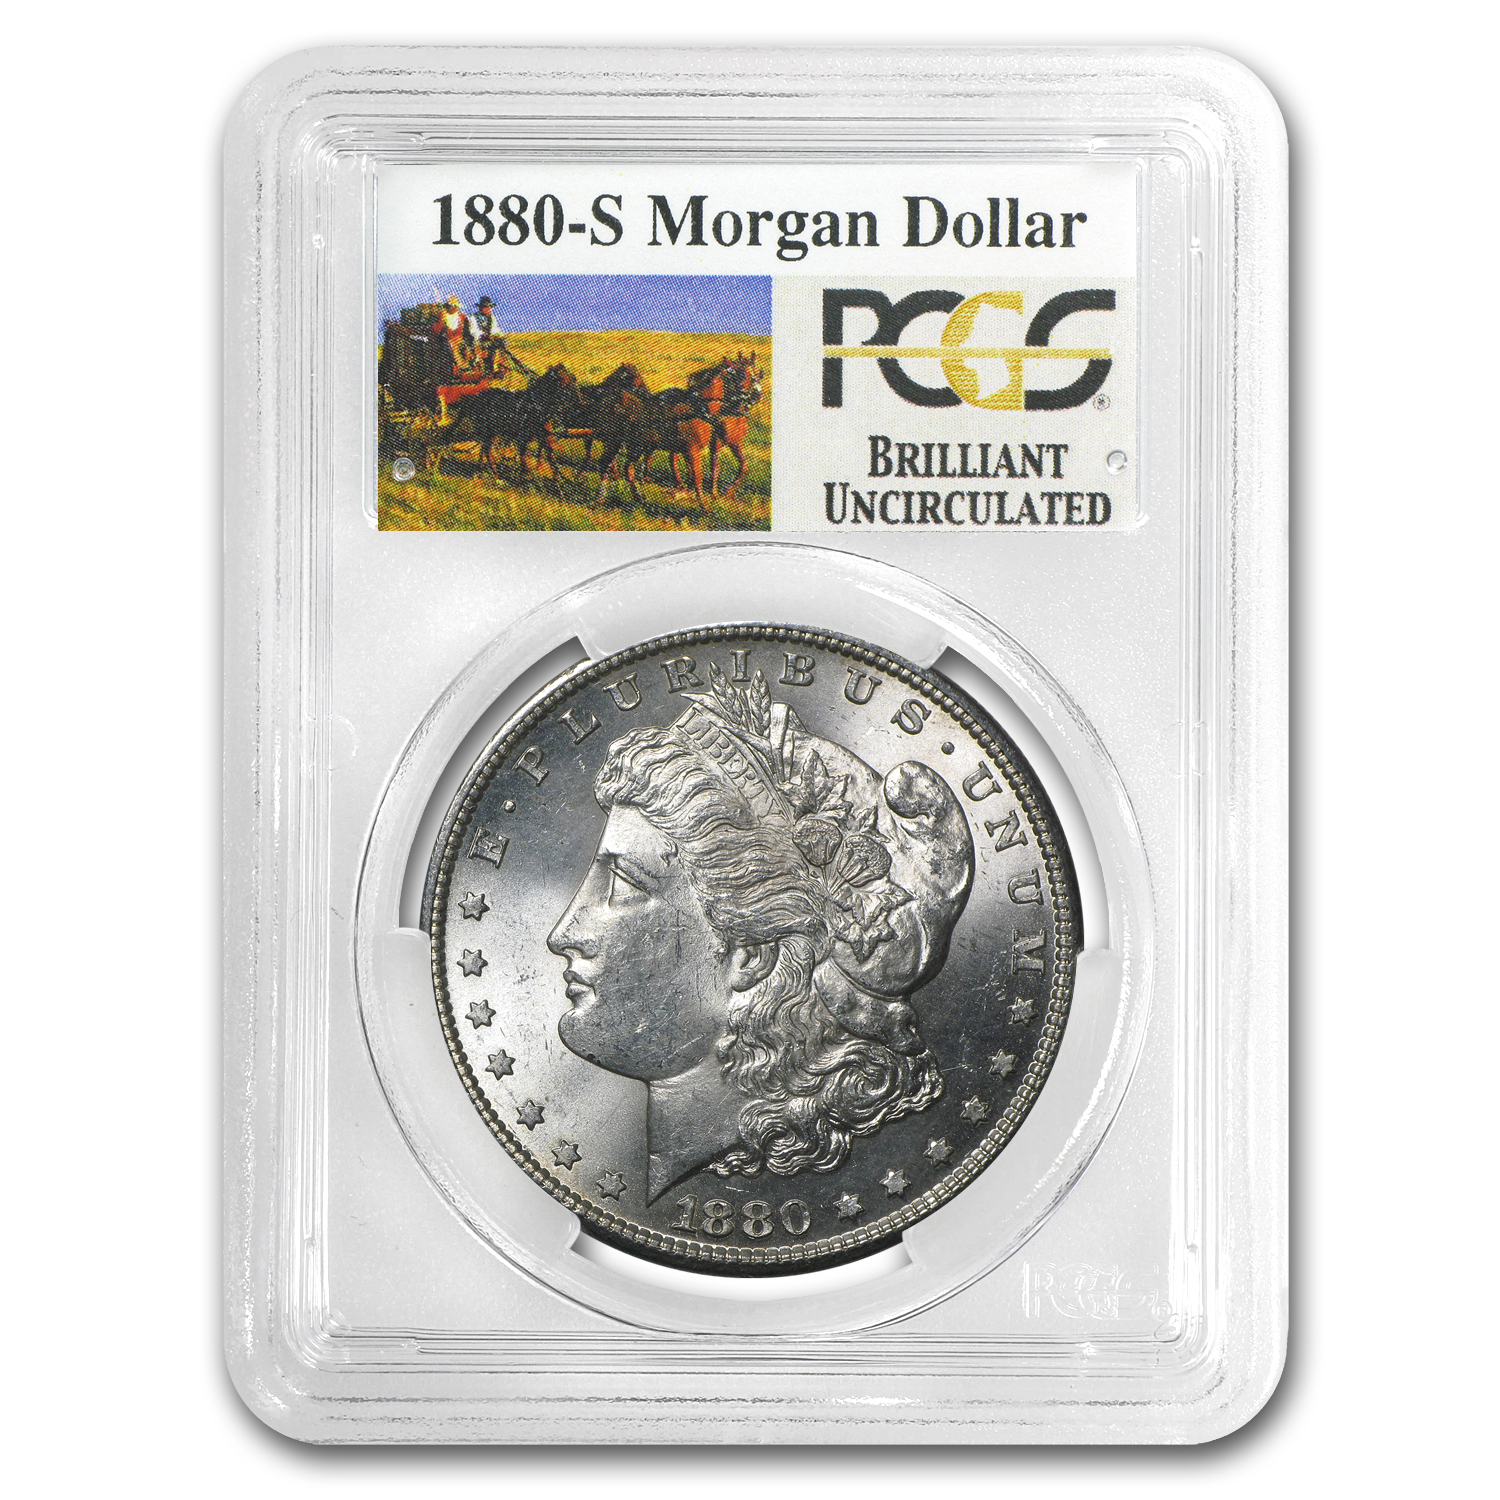 1878-1904 Stage Coach Morgan Silver Dollars by PCGS (BU)